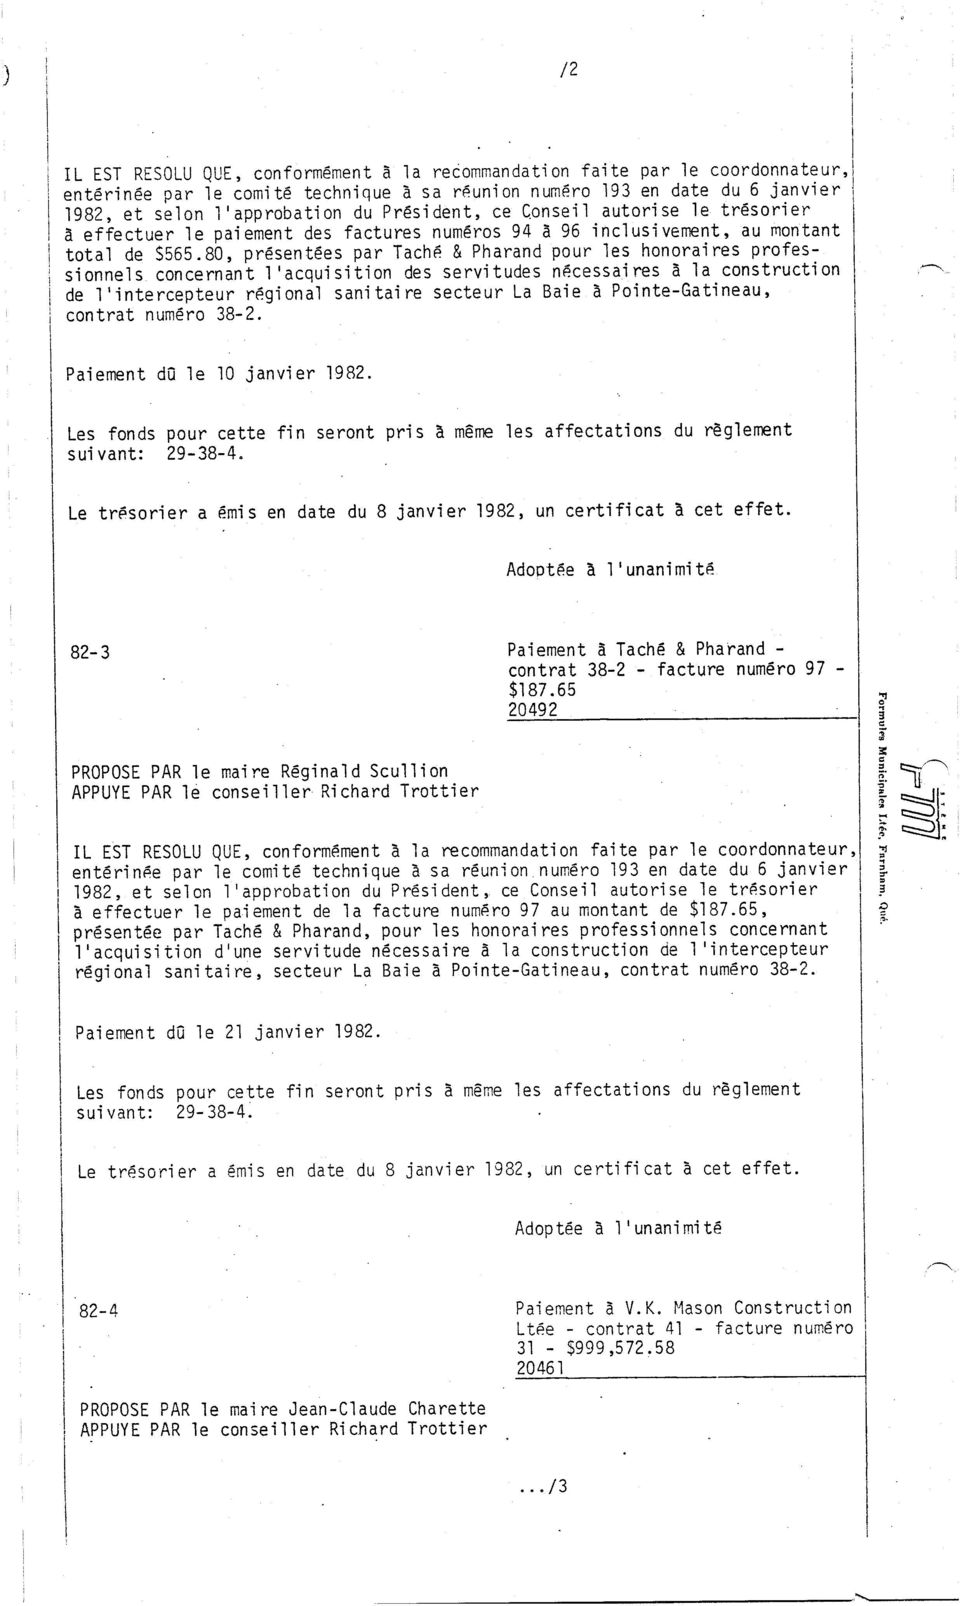 80, présentées par Tach6 & Pharand pour les honoraires professionnels concernant 1 'acquisition des servi tudes necessai res à la construction de 1 'intercepteur r6gi onal sani tai re secteur La Baie